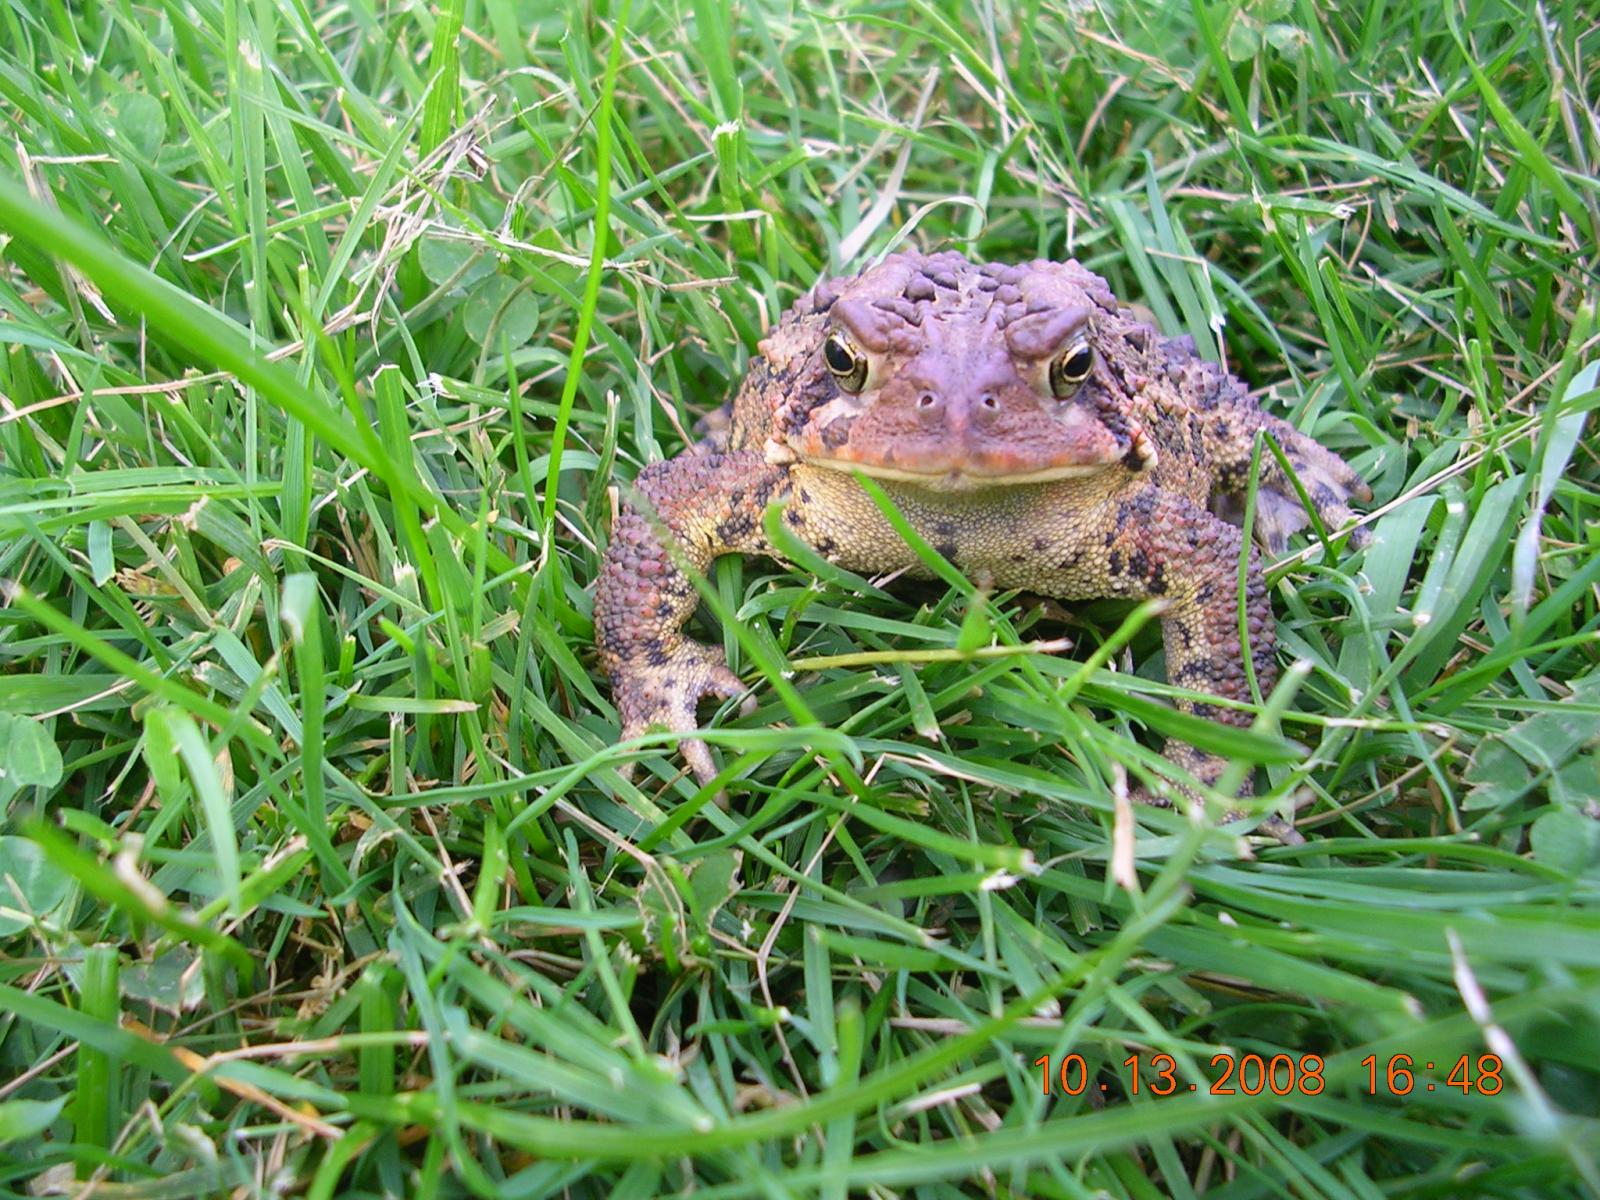 american toad in grass in daylight